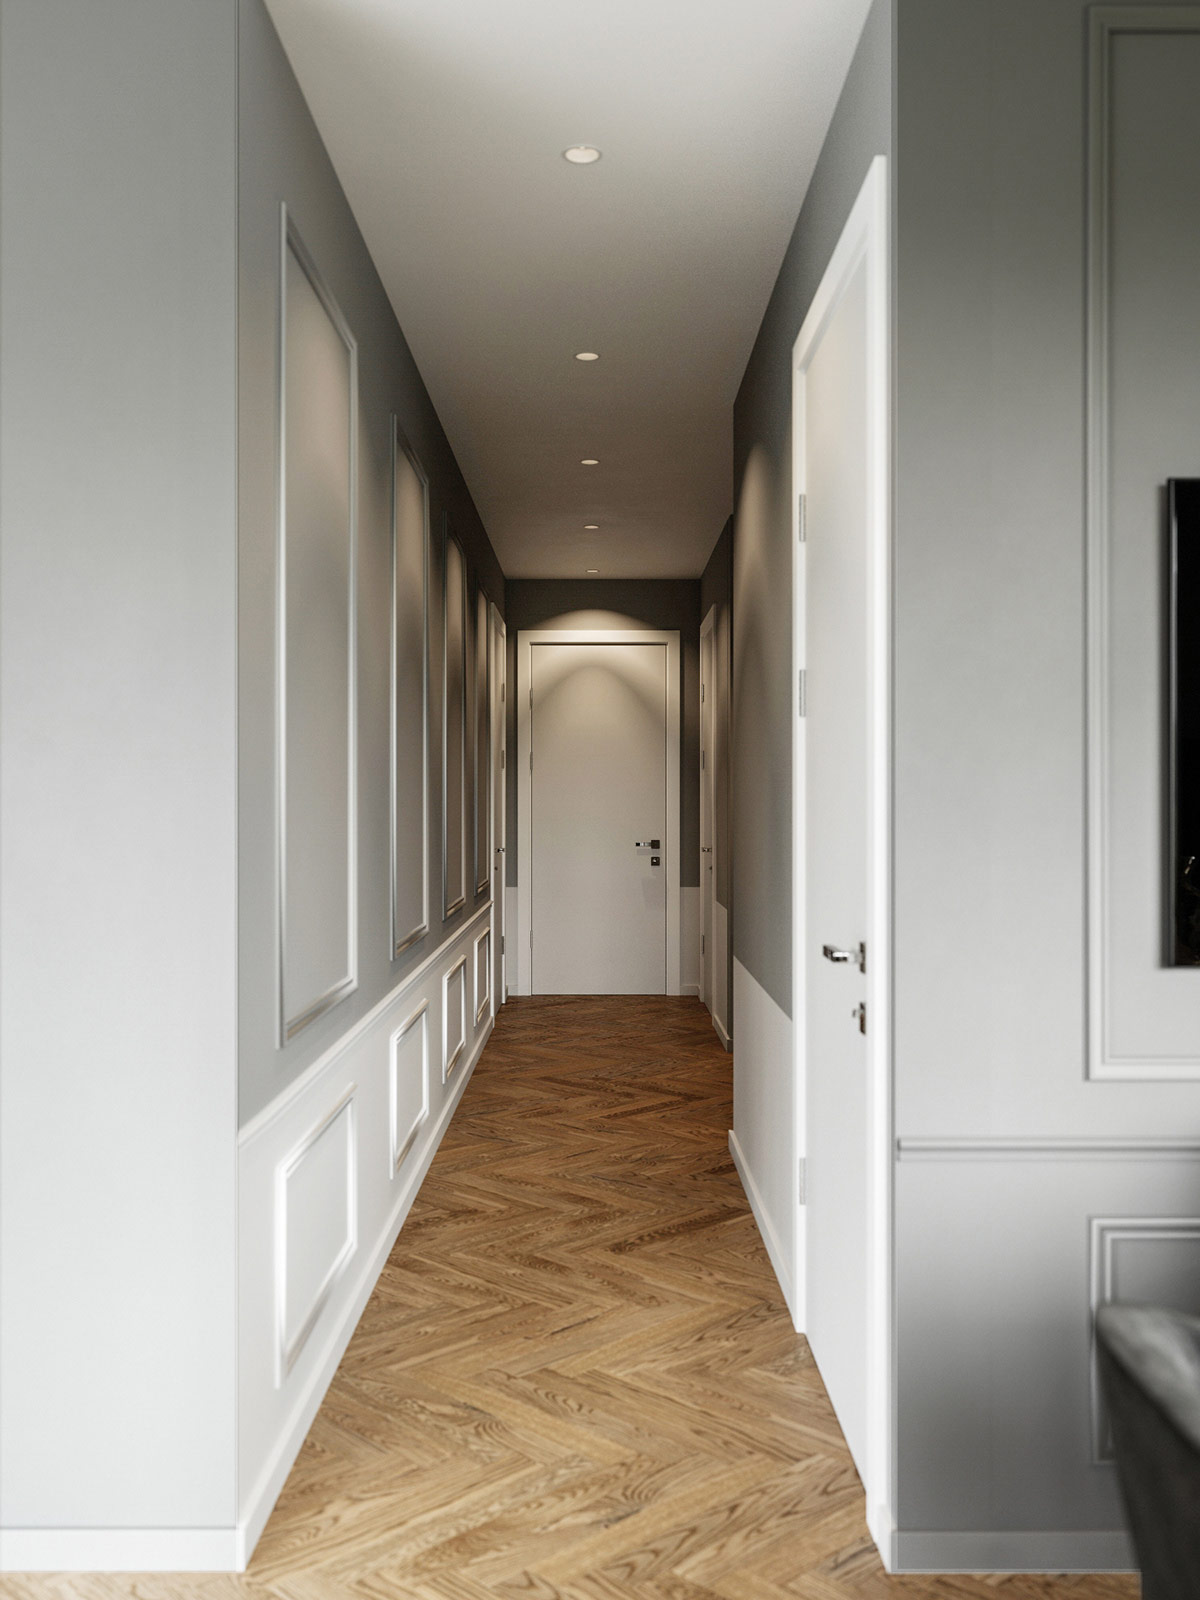 grey-and-white-paneled-modern-home-hallway-design-ideas-with-chevron-floors